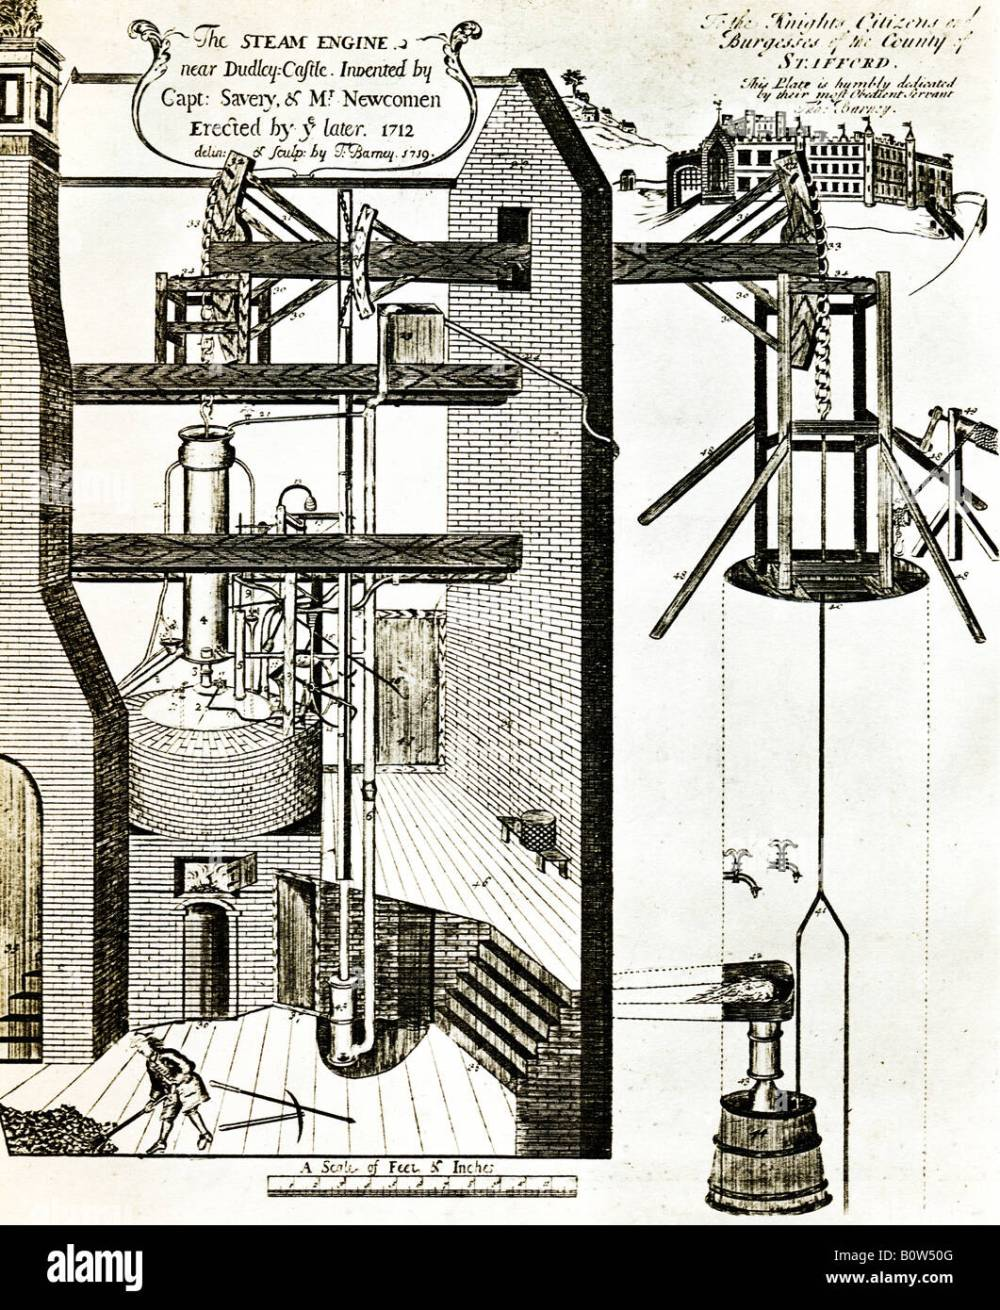 medium resolution of thomas newcomen steam engine 1712 the first atmospheric steam engine in dudley for pumping water out of mines